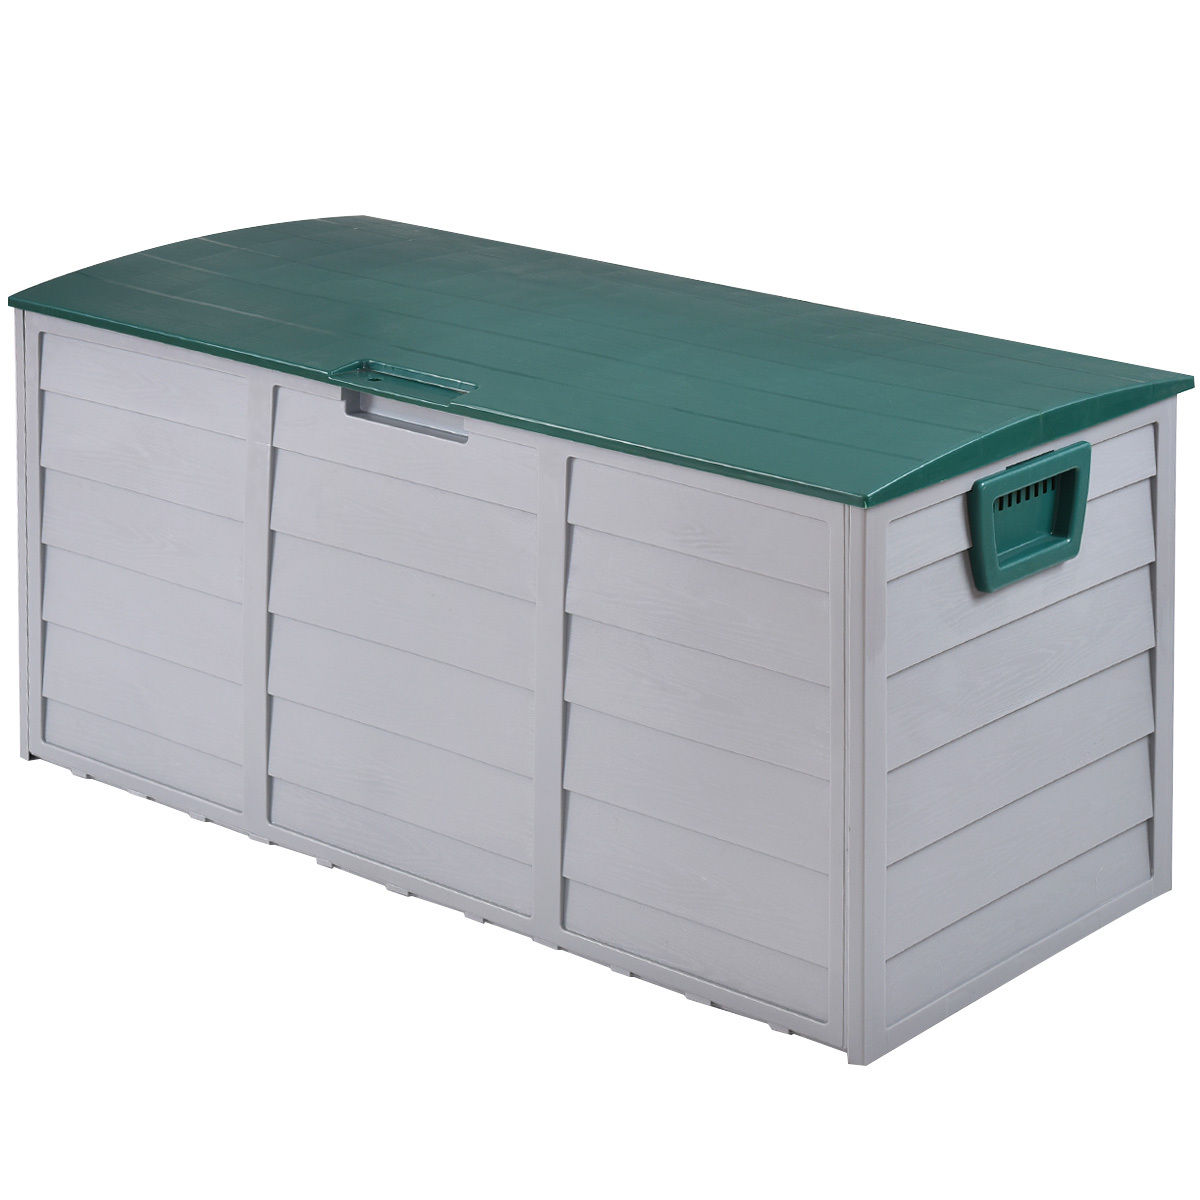 Patio Storage Containers Keter Brightwood Outdoor Plastic